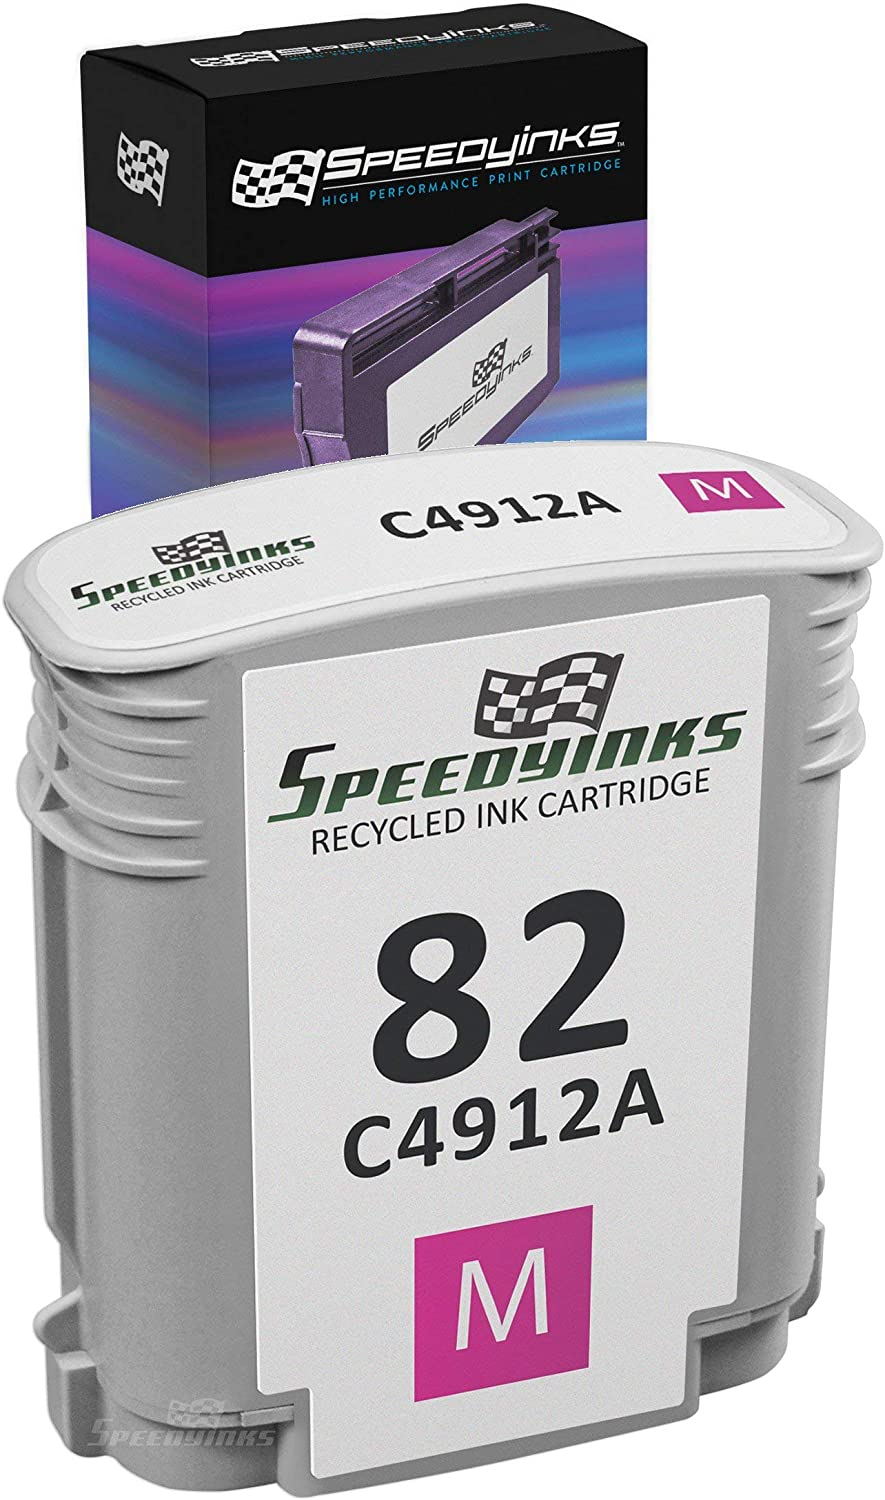 Speedy Inks Remanufactured Ink Cartridge Replacement for HP 82 C4912A (Magenta)